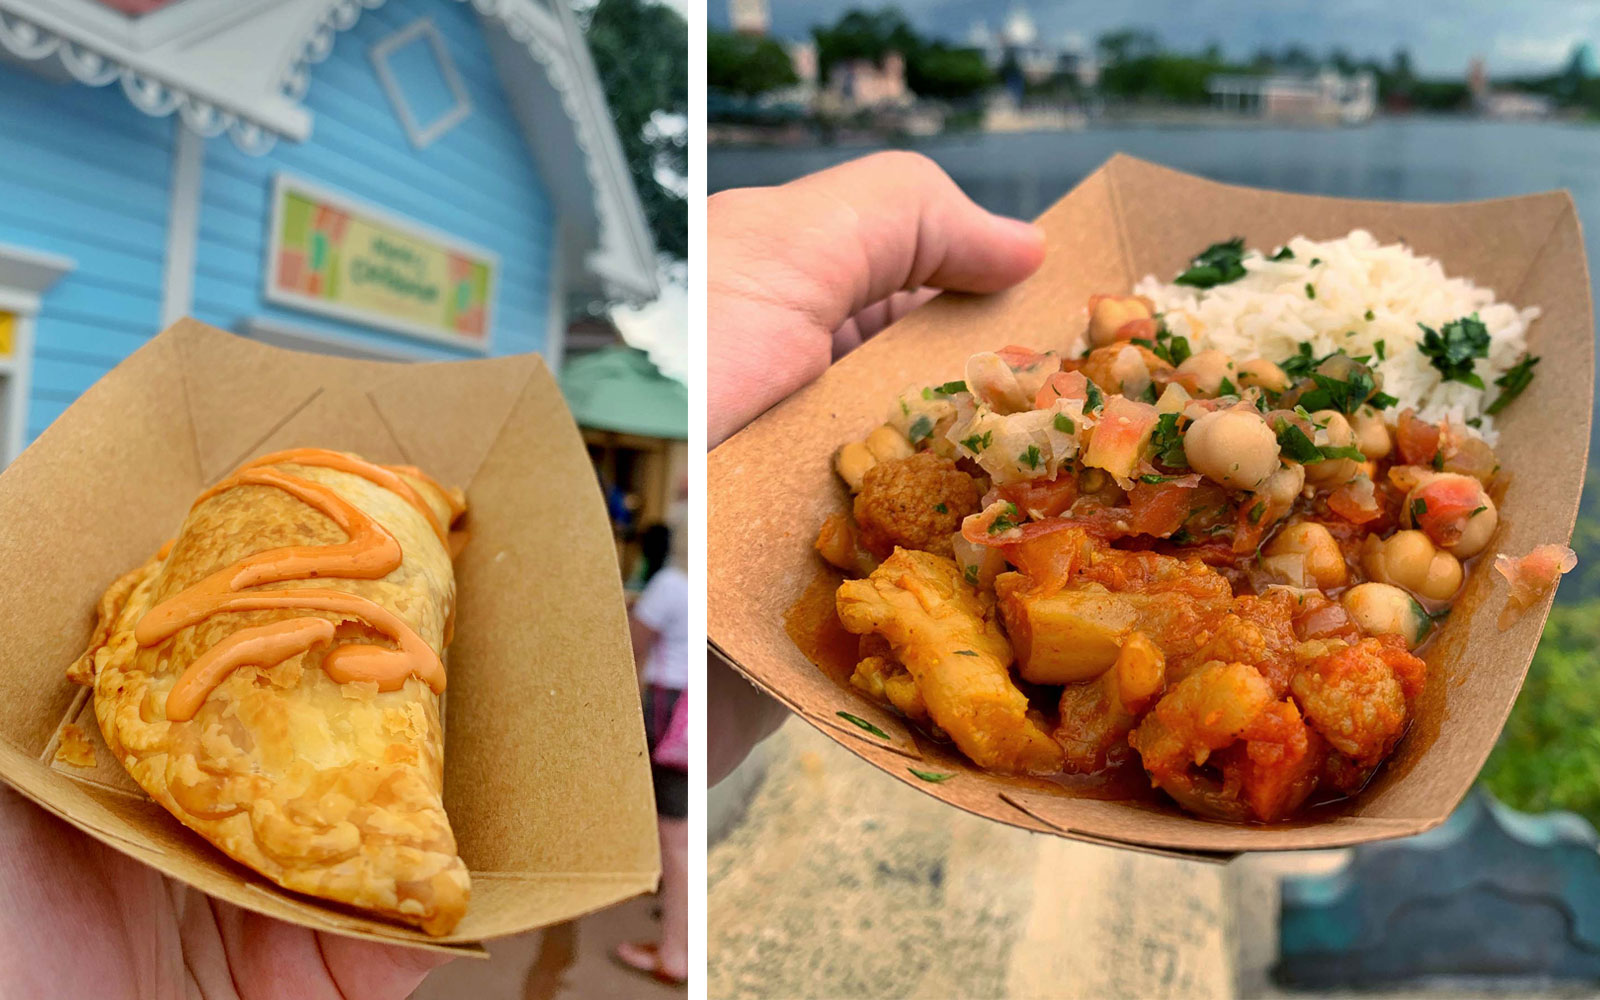 5 Foods You Should Definitely Eat at the 2019 Epcot Food & Wine Festival